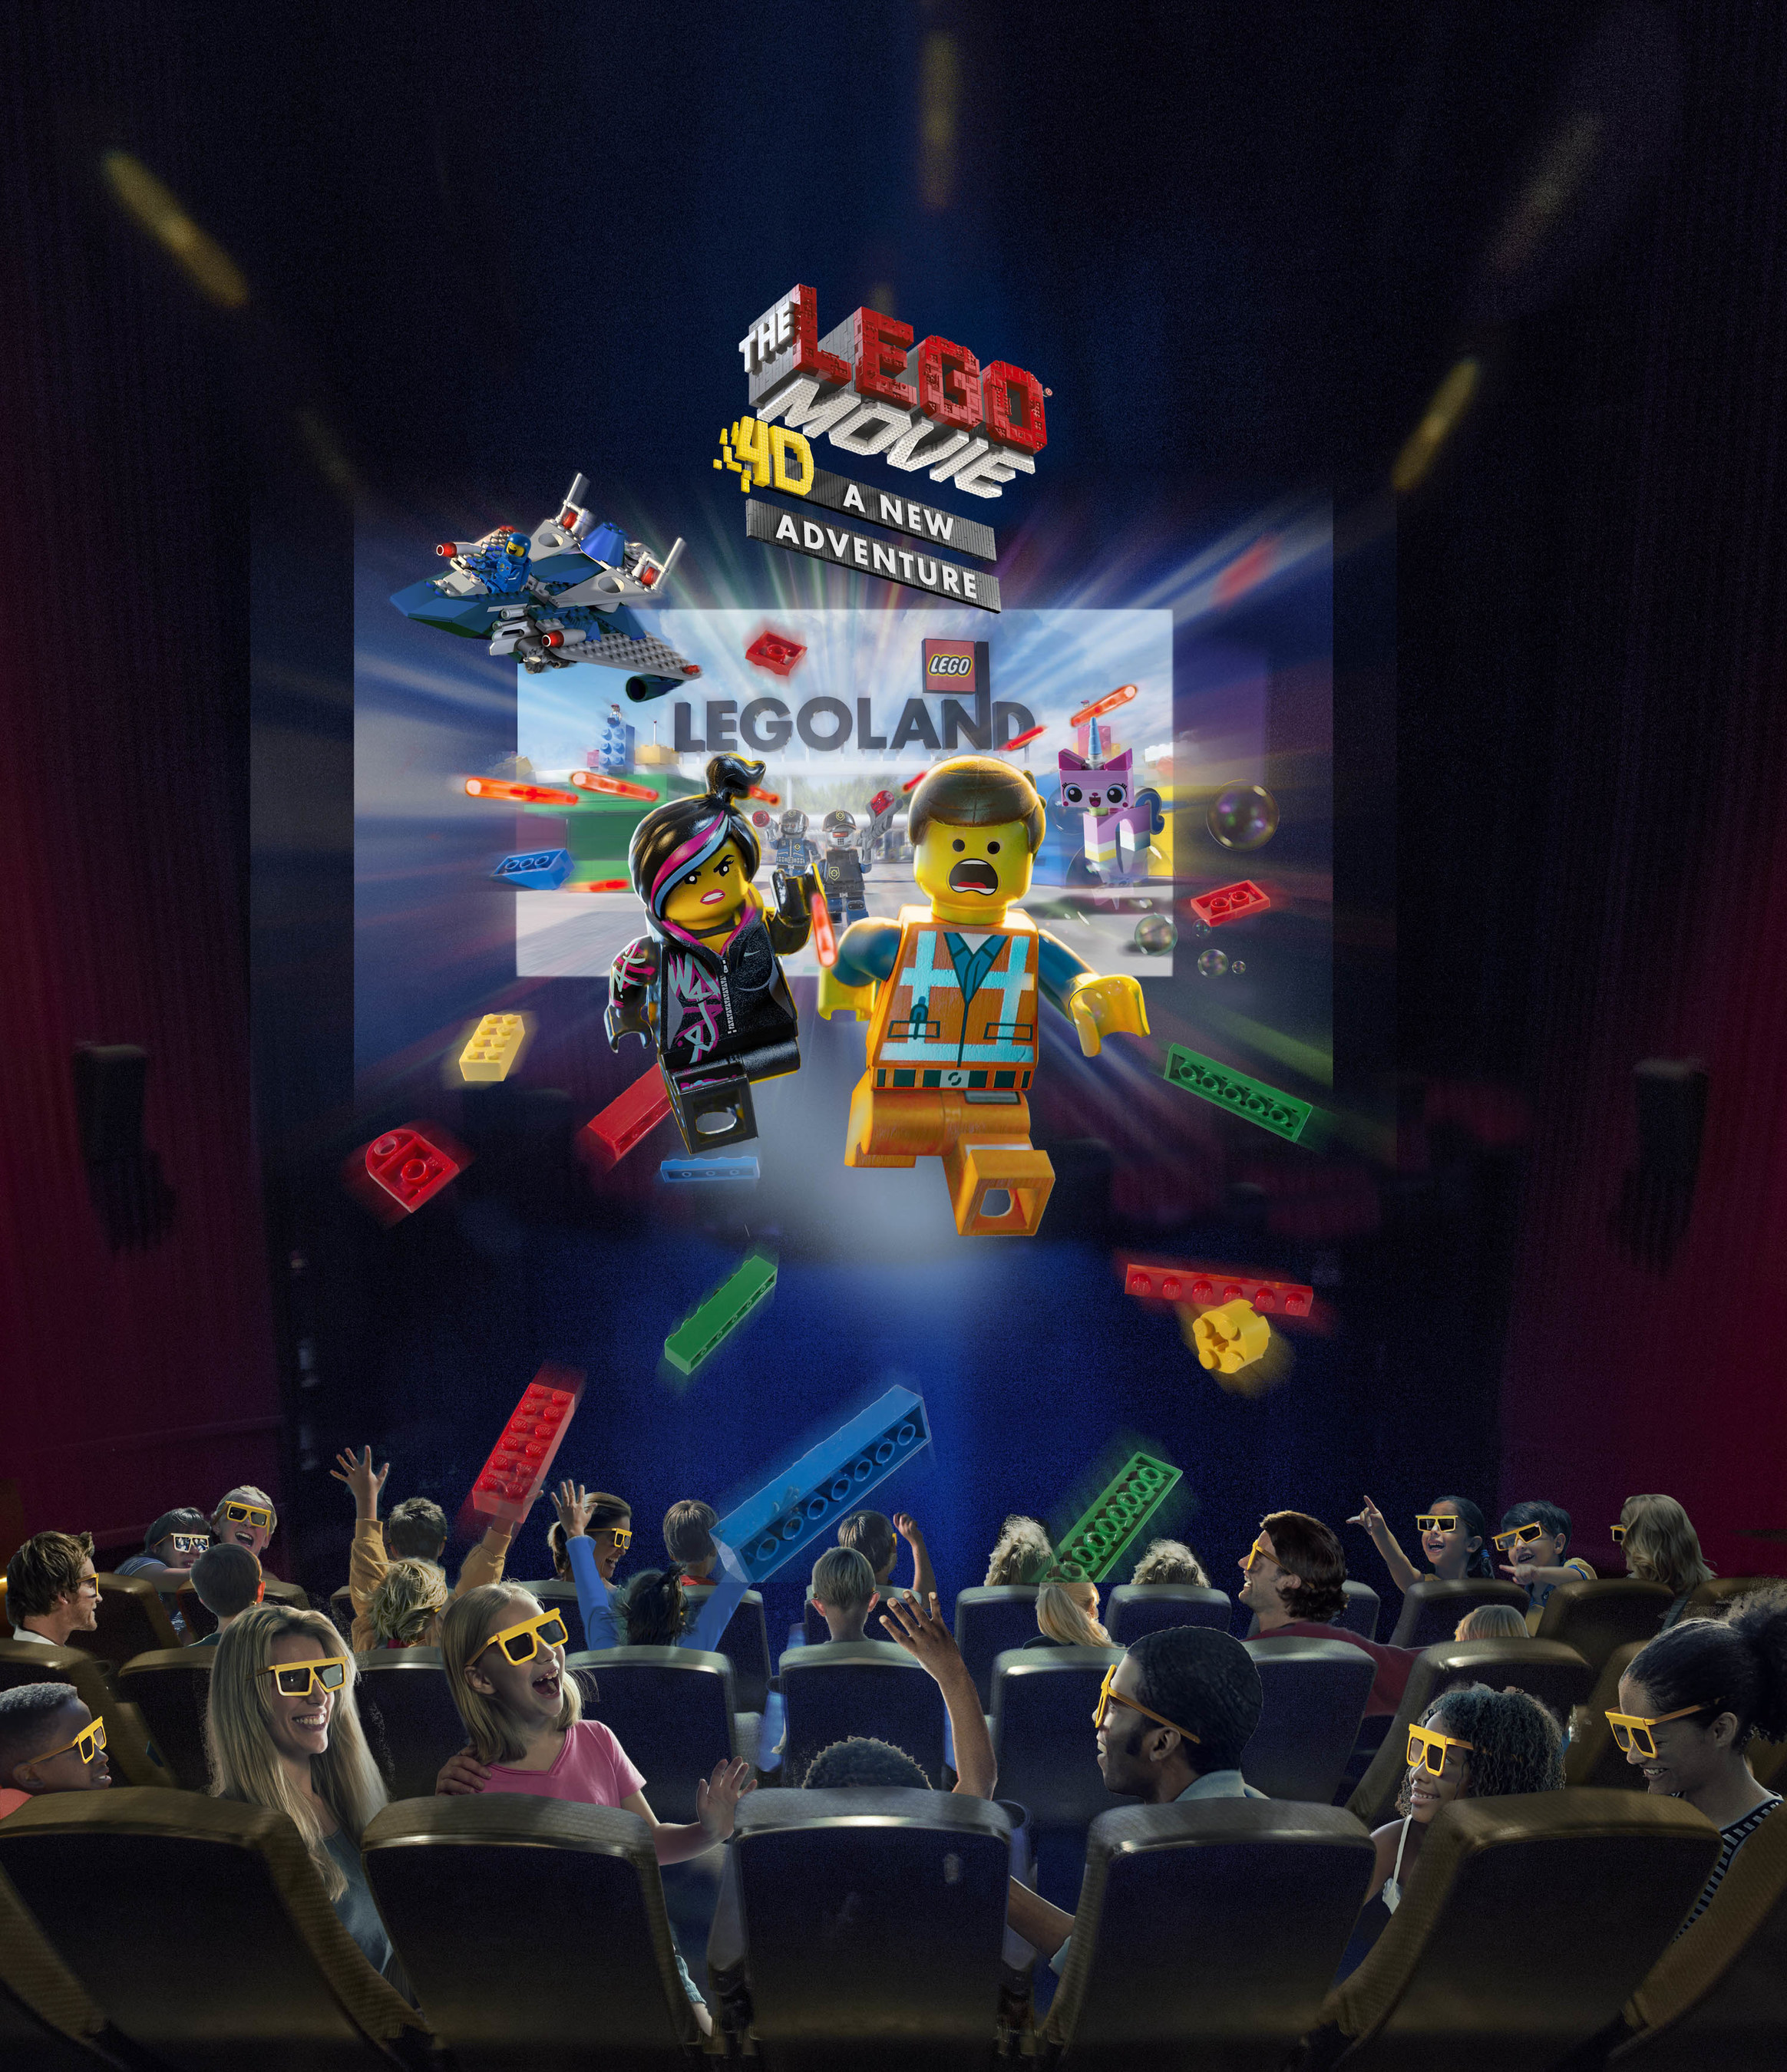 'The LEGO' Movie 4D A New Adventure' Brings Awesome Back Exclusively To LEGOLAND' Parks And LEGOLAND' Discovery Centers Worldwide In January 2016!